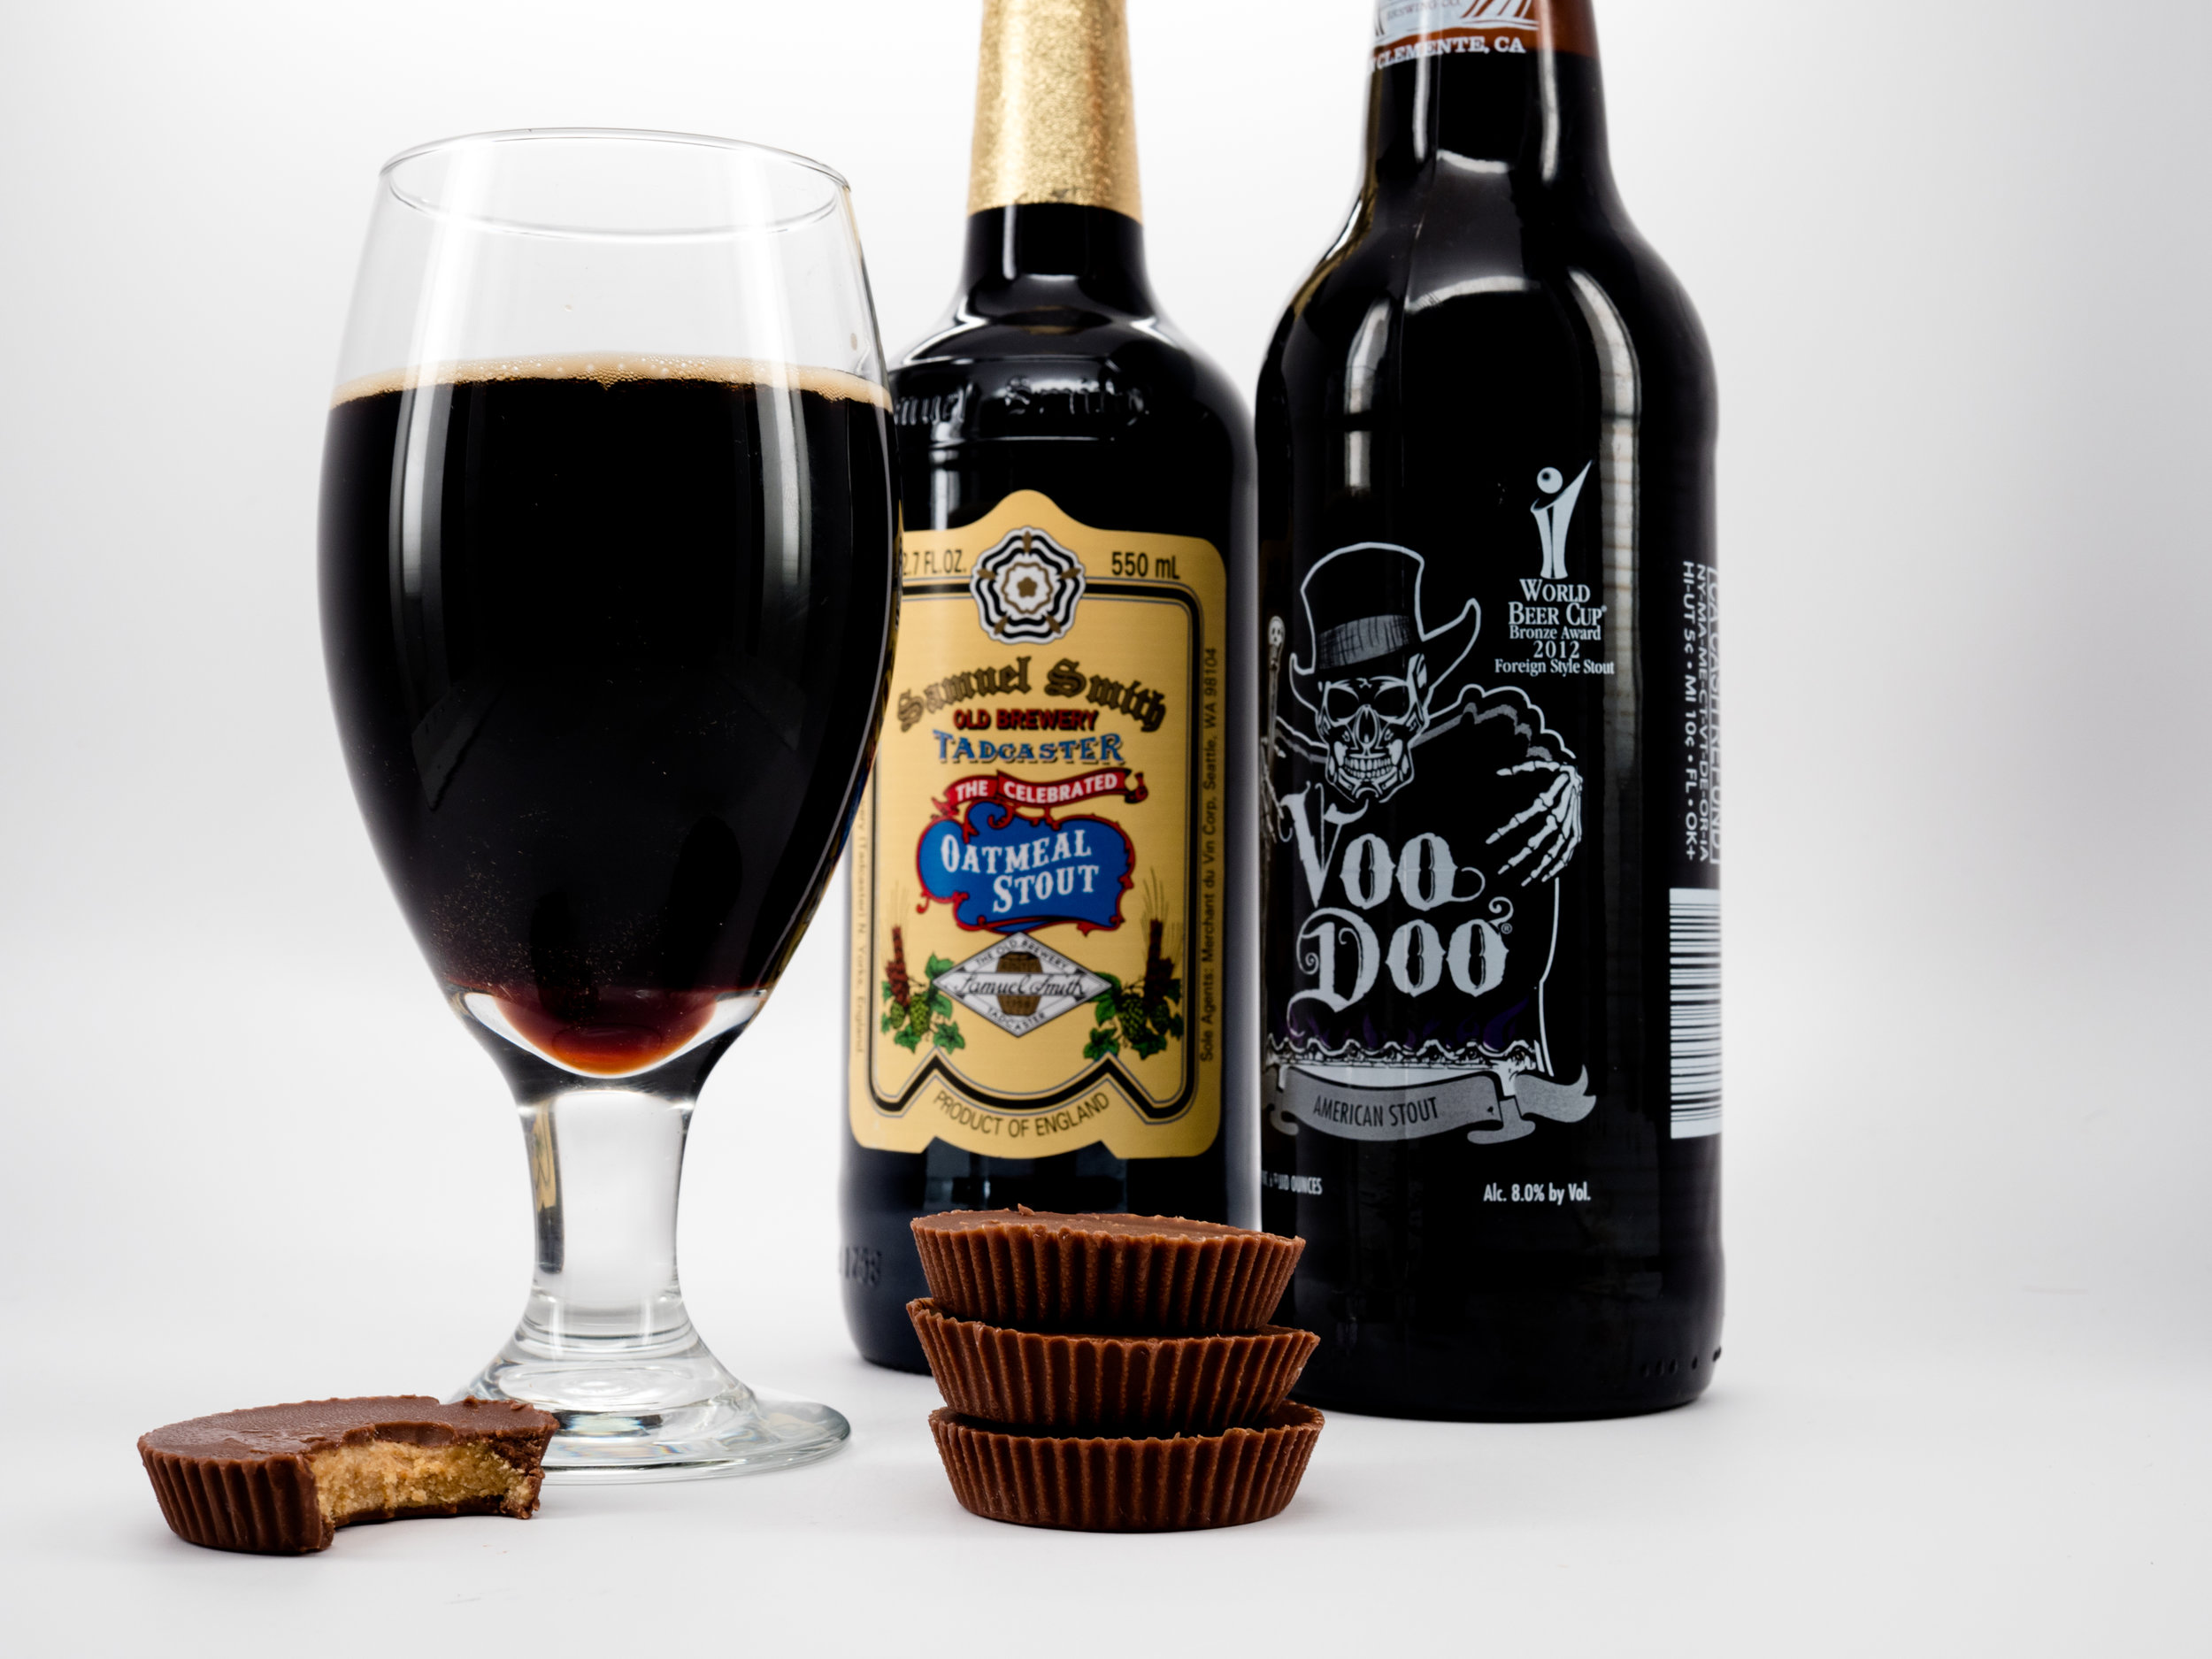 Musings by the Glass - Pairing Beer with Halloween Candy - Reese's Peanut Butter Cups and Left Coast Voo Doo American Stout